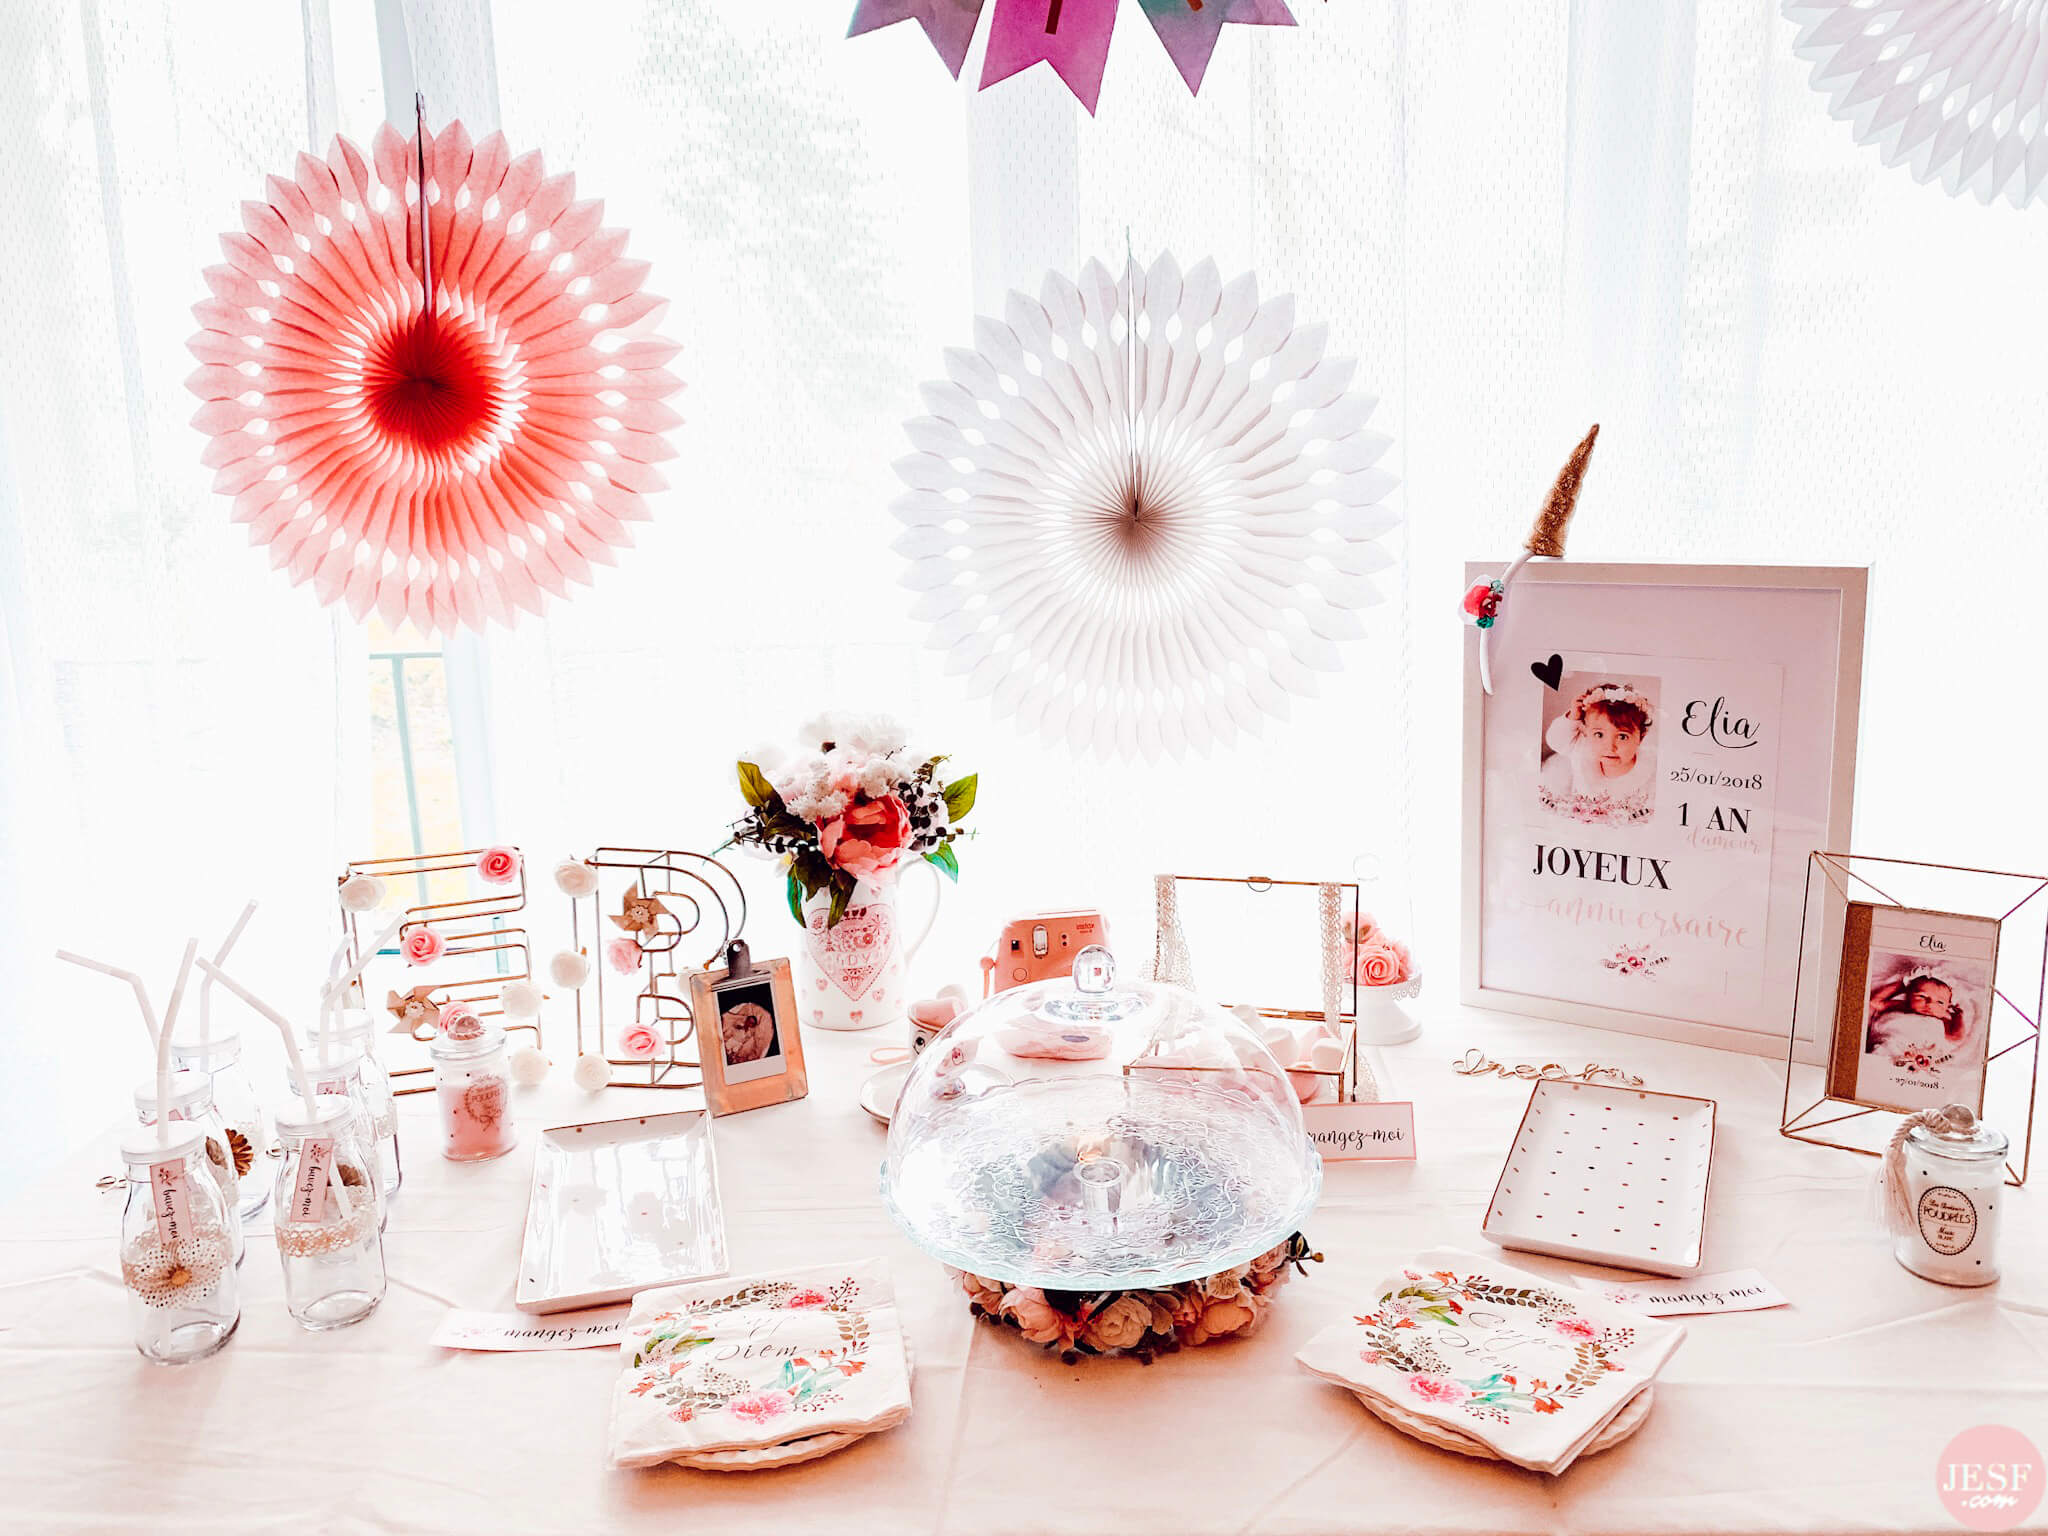 fête-anniversaire-sweet-table-petite-fille-1-an-girly-rose-or-birthday